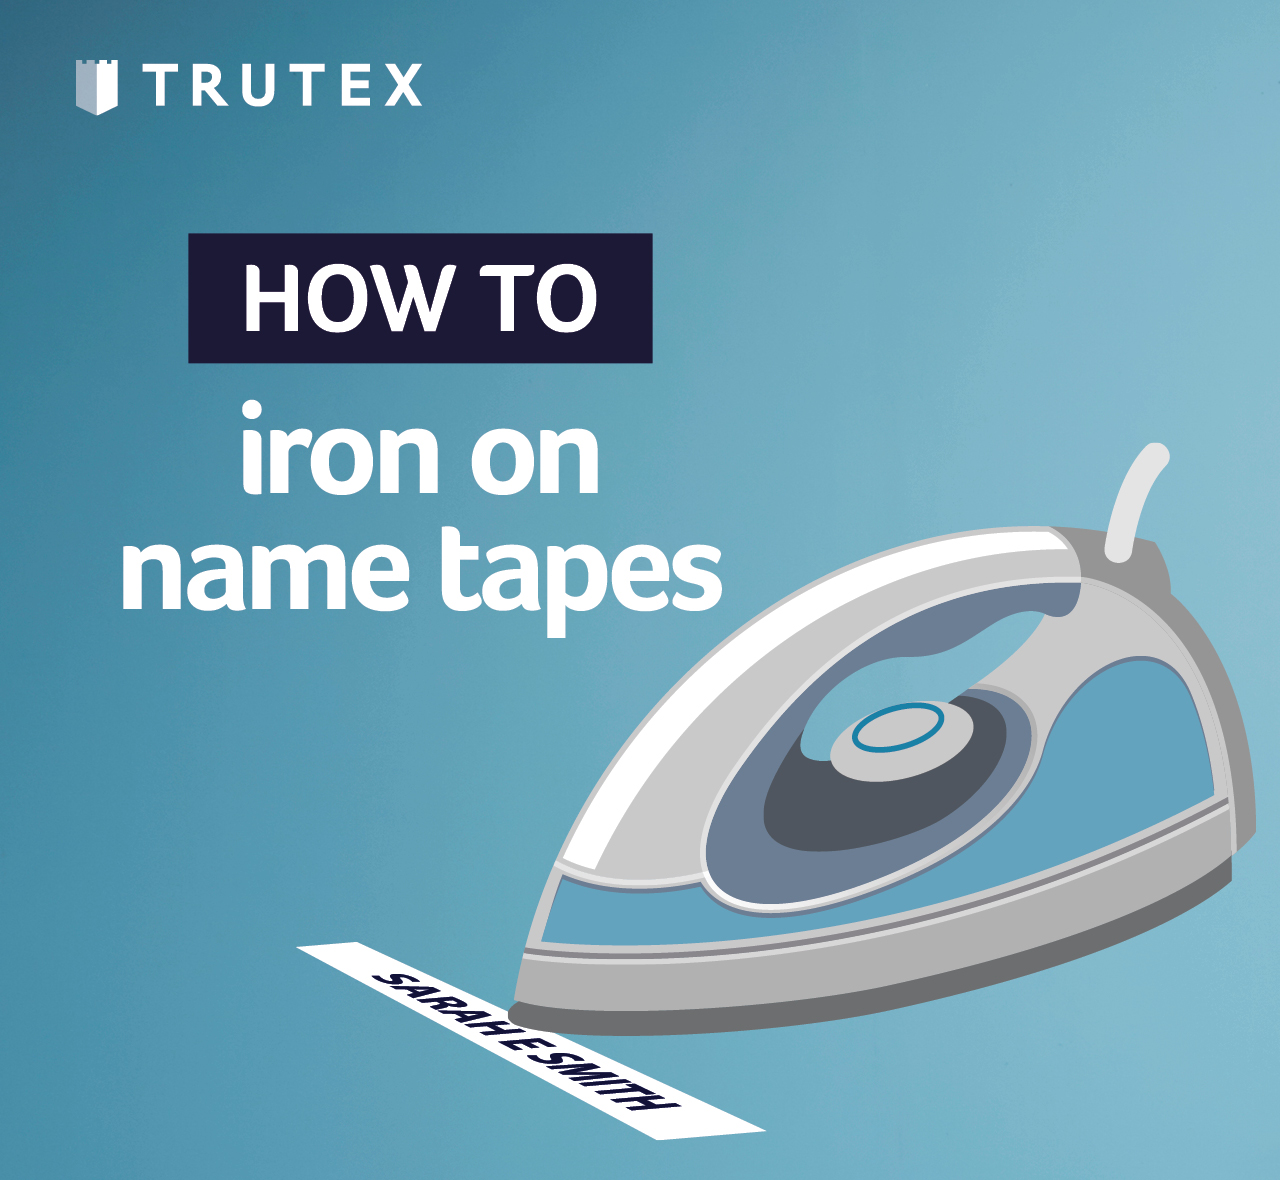 How to: iron on name tapes